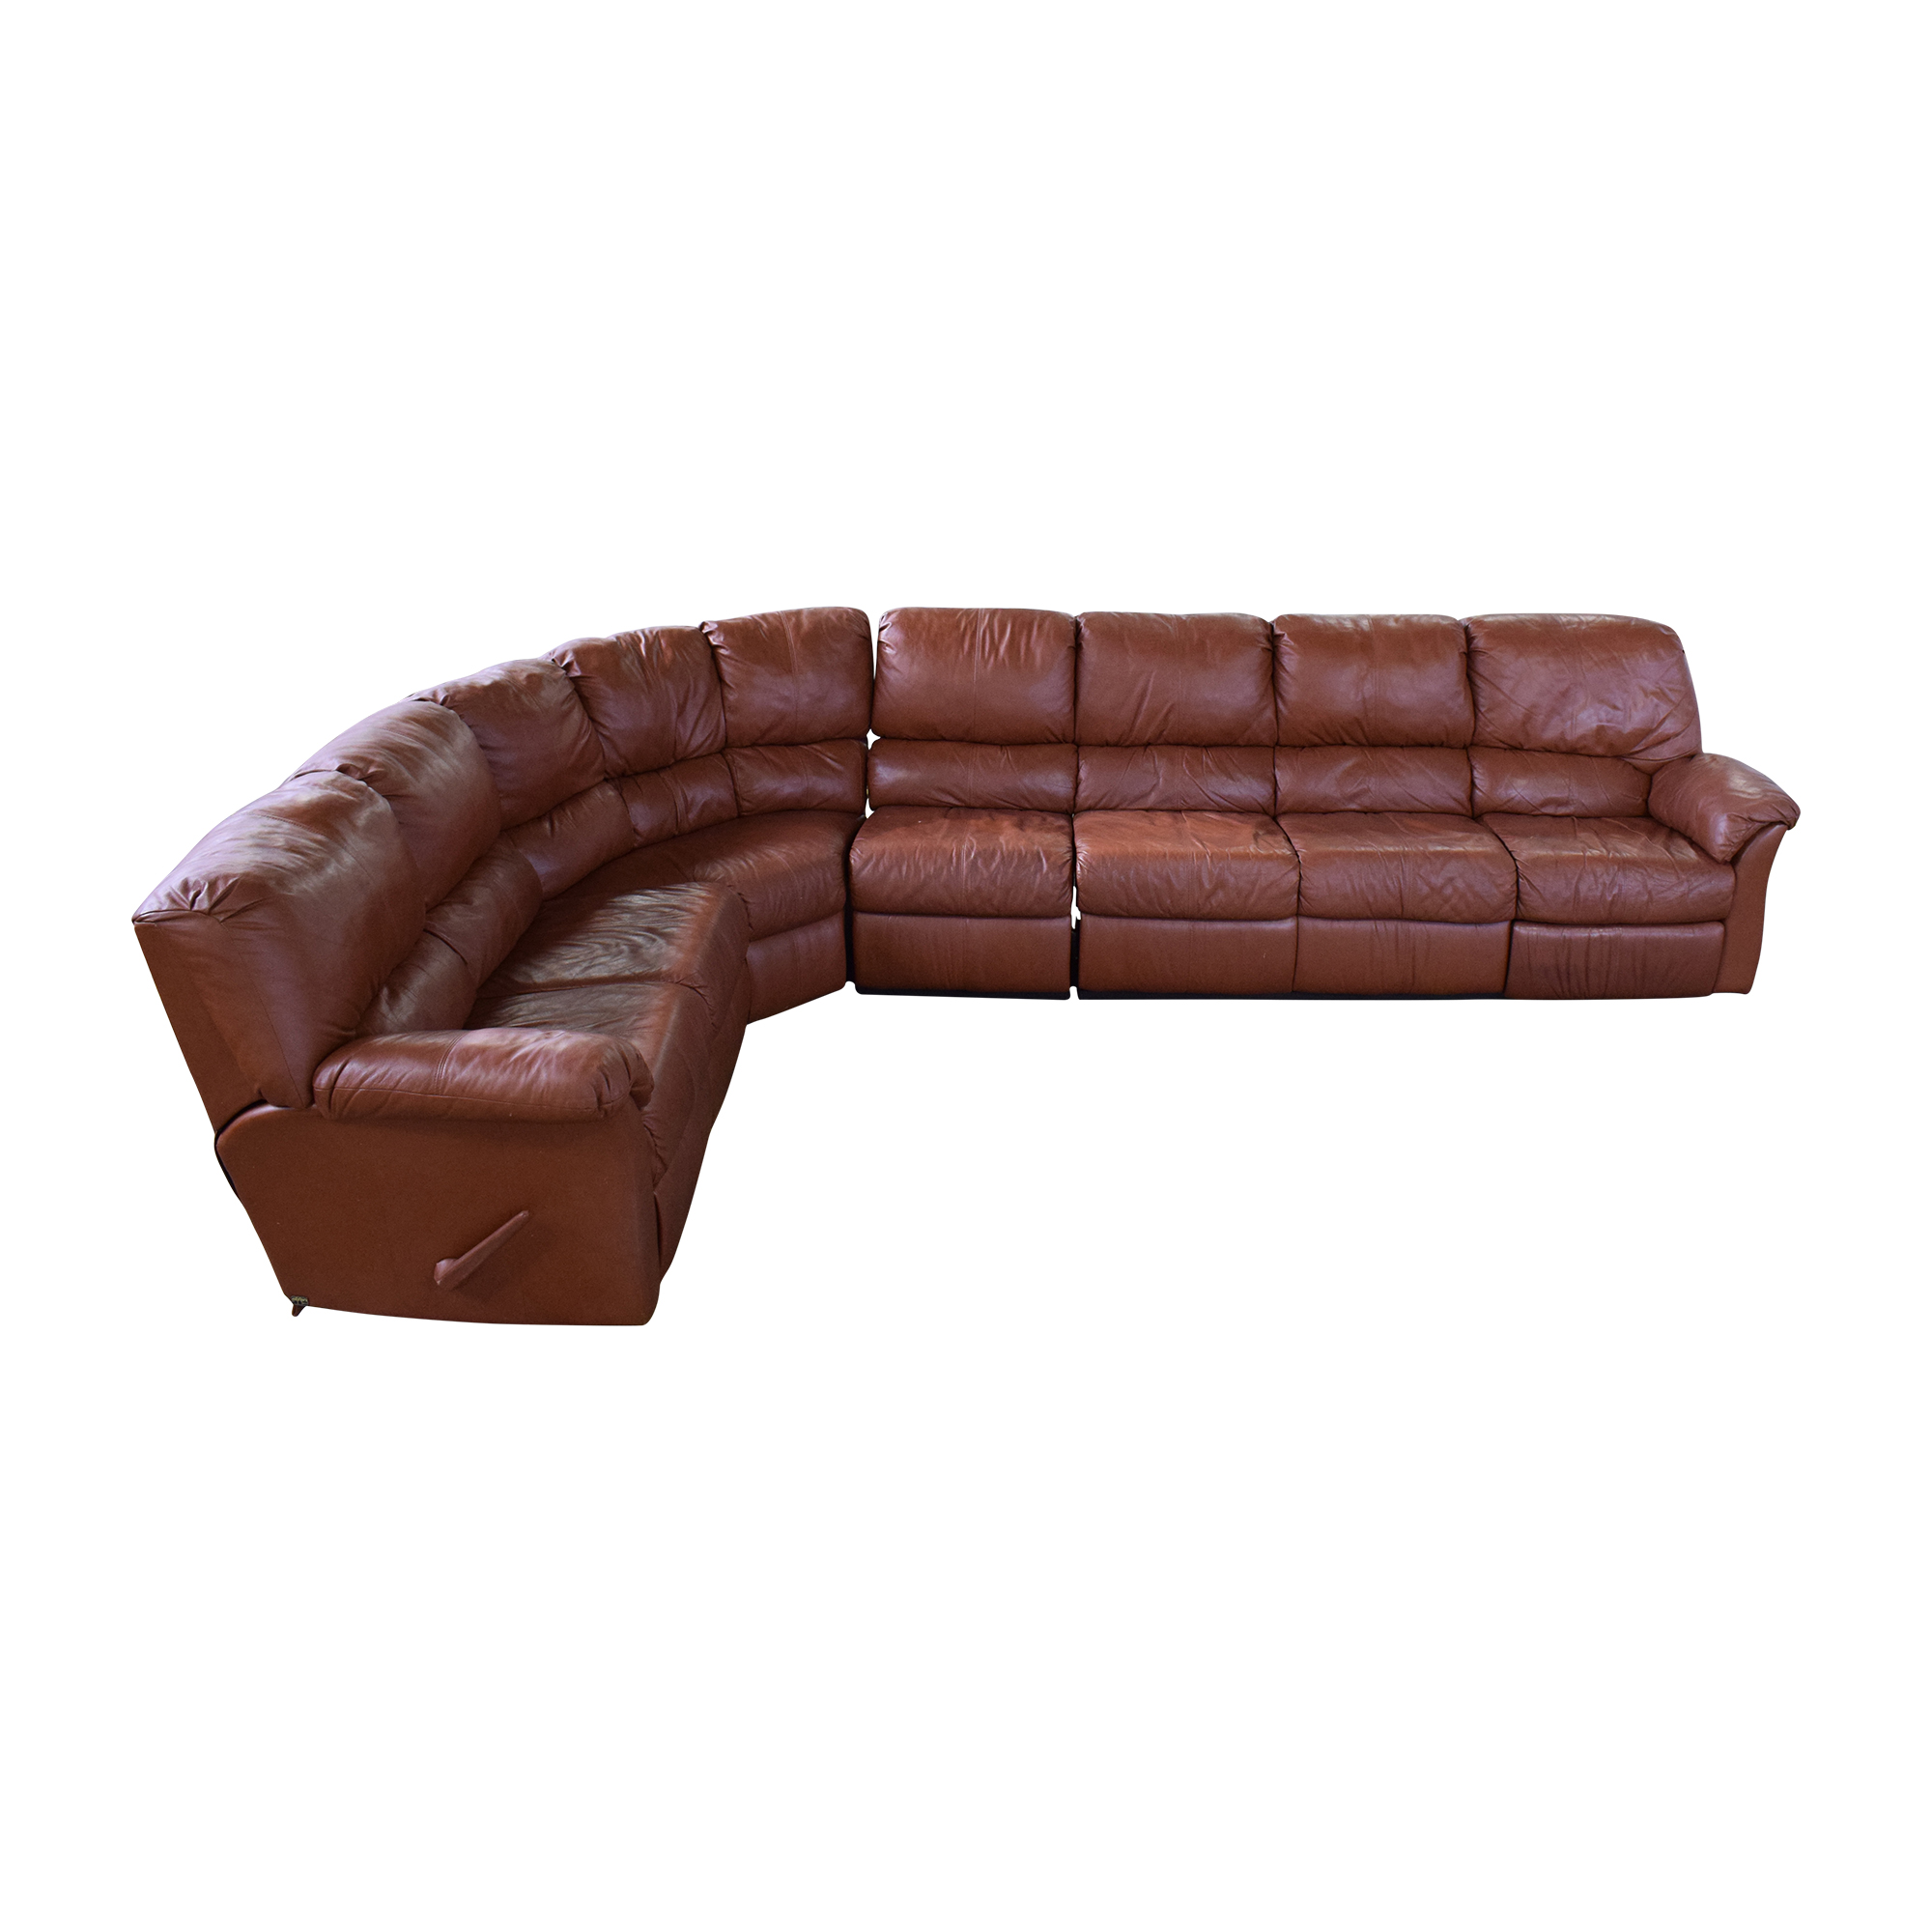 Elran Elran Reclining Curved Sectional Sofa dimensions